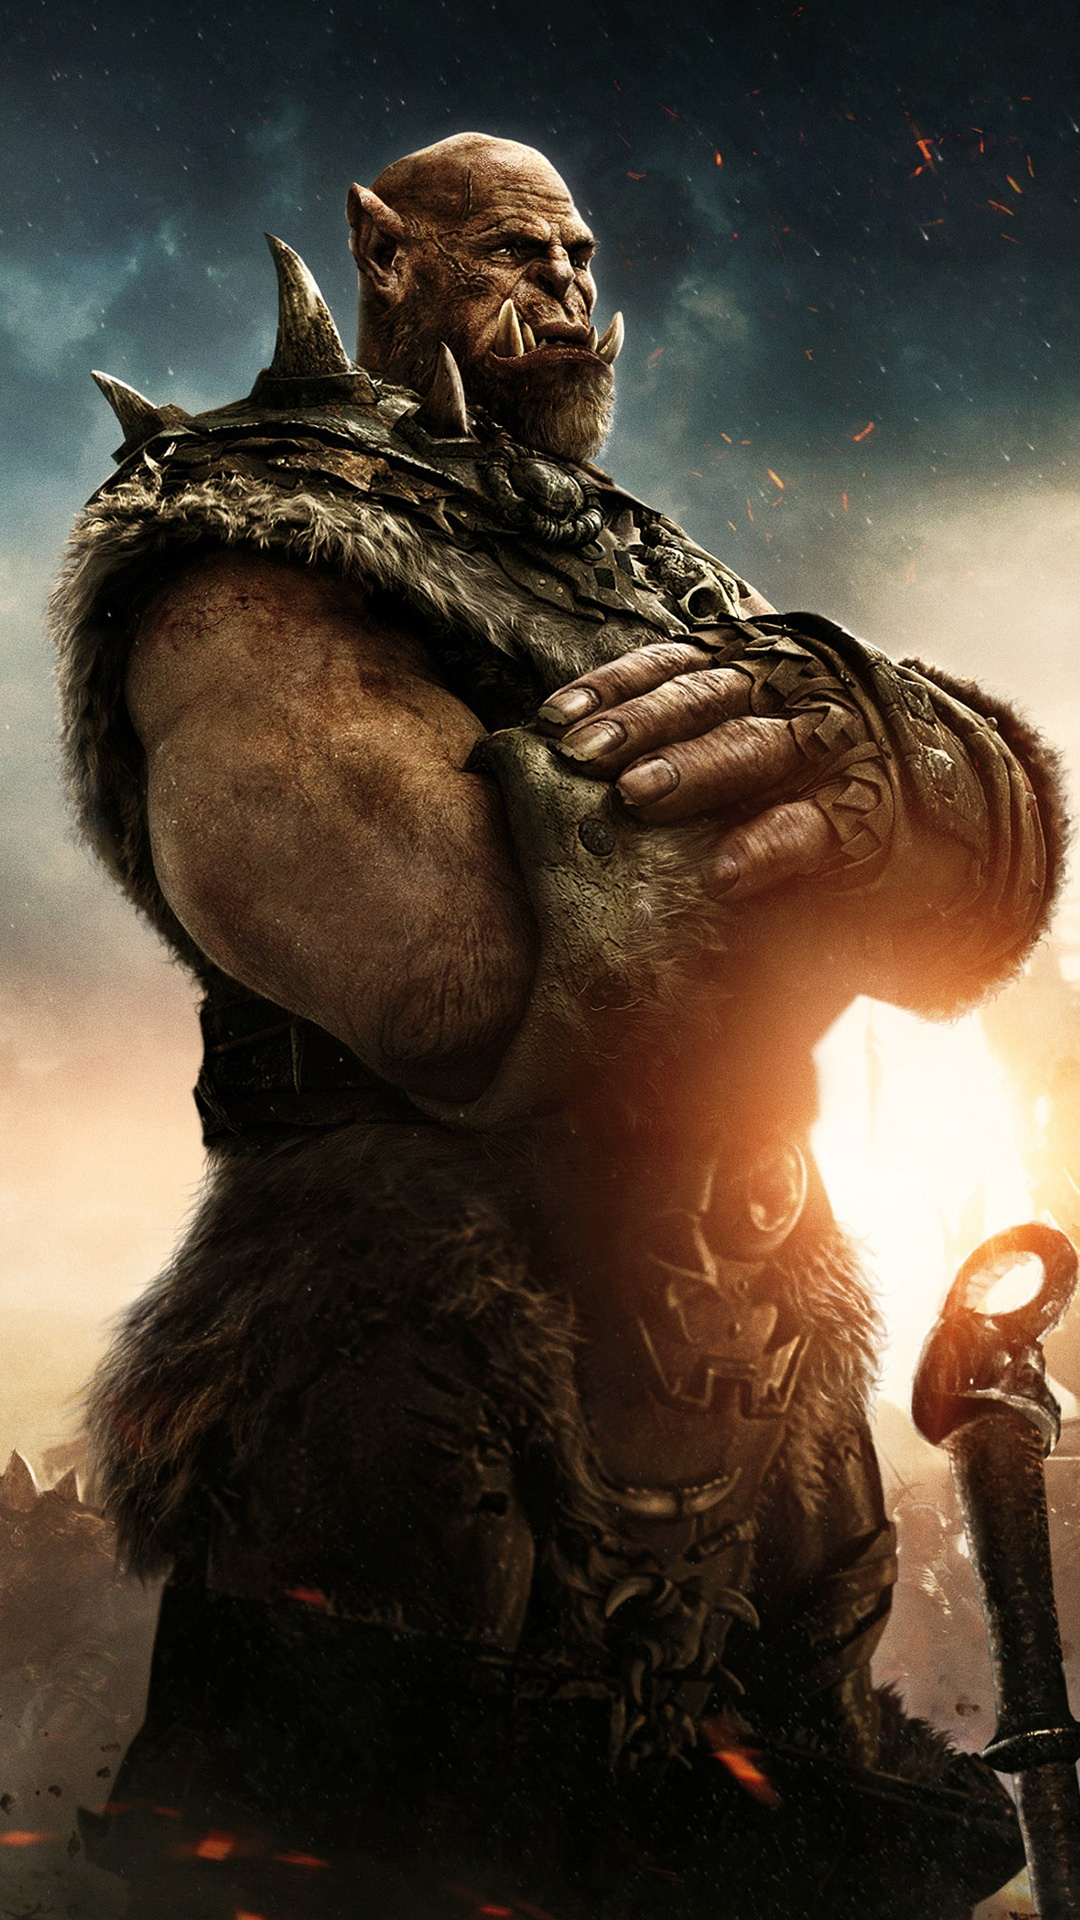 Orgrim Warcraft Movie Wallpapers In Jpg Format For Free Download